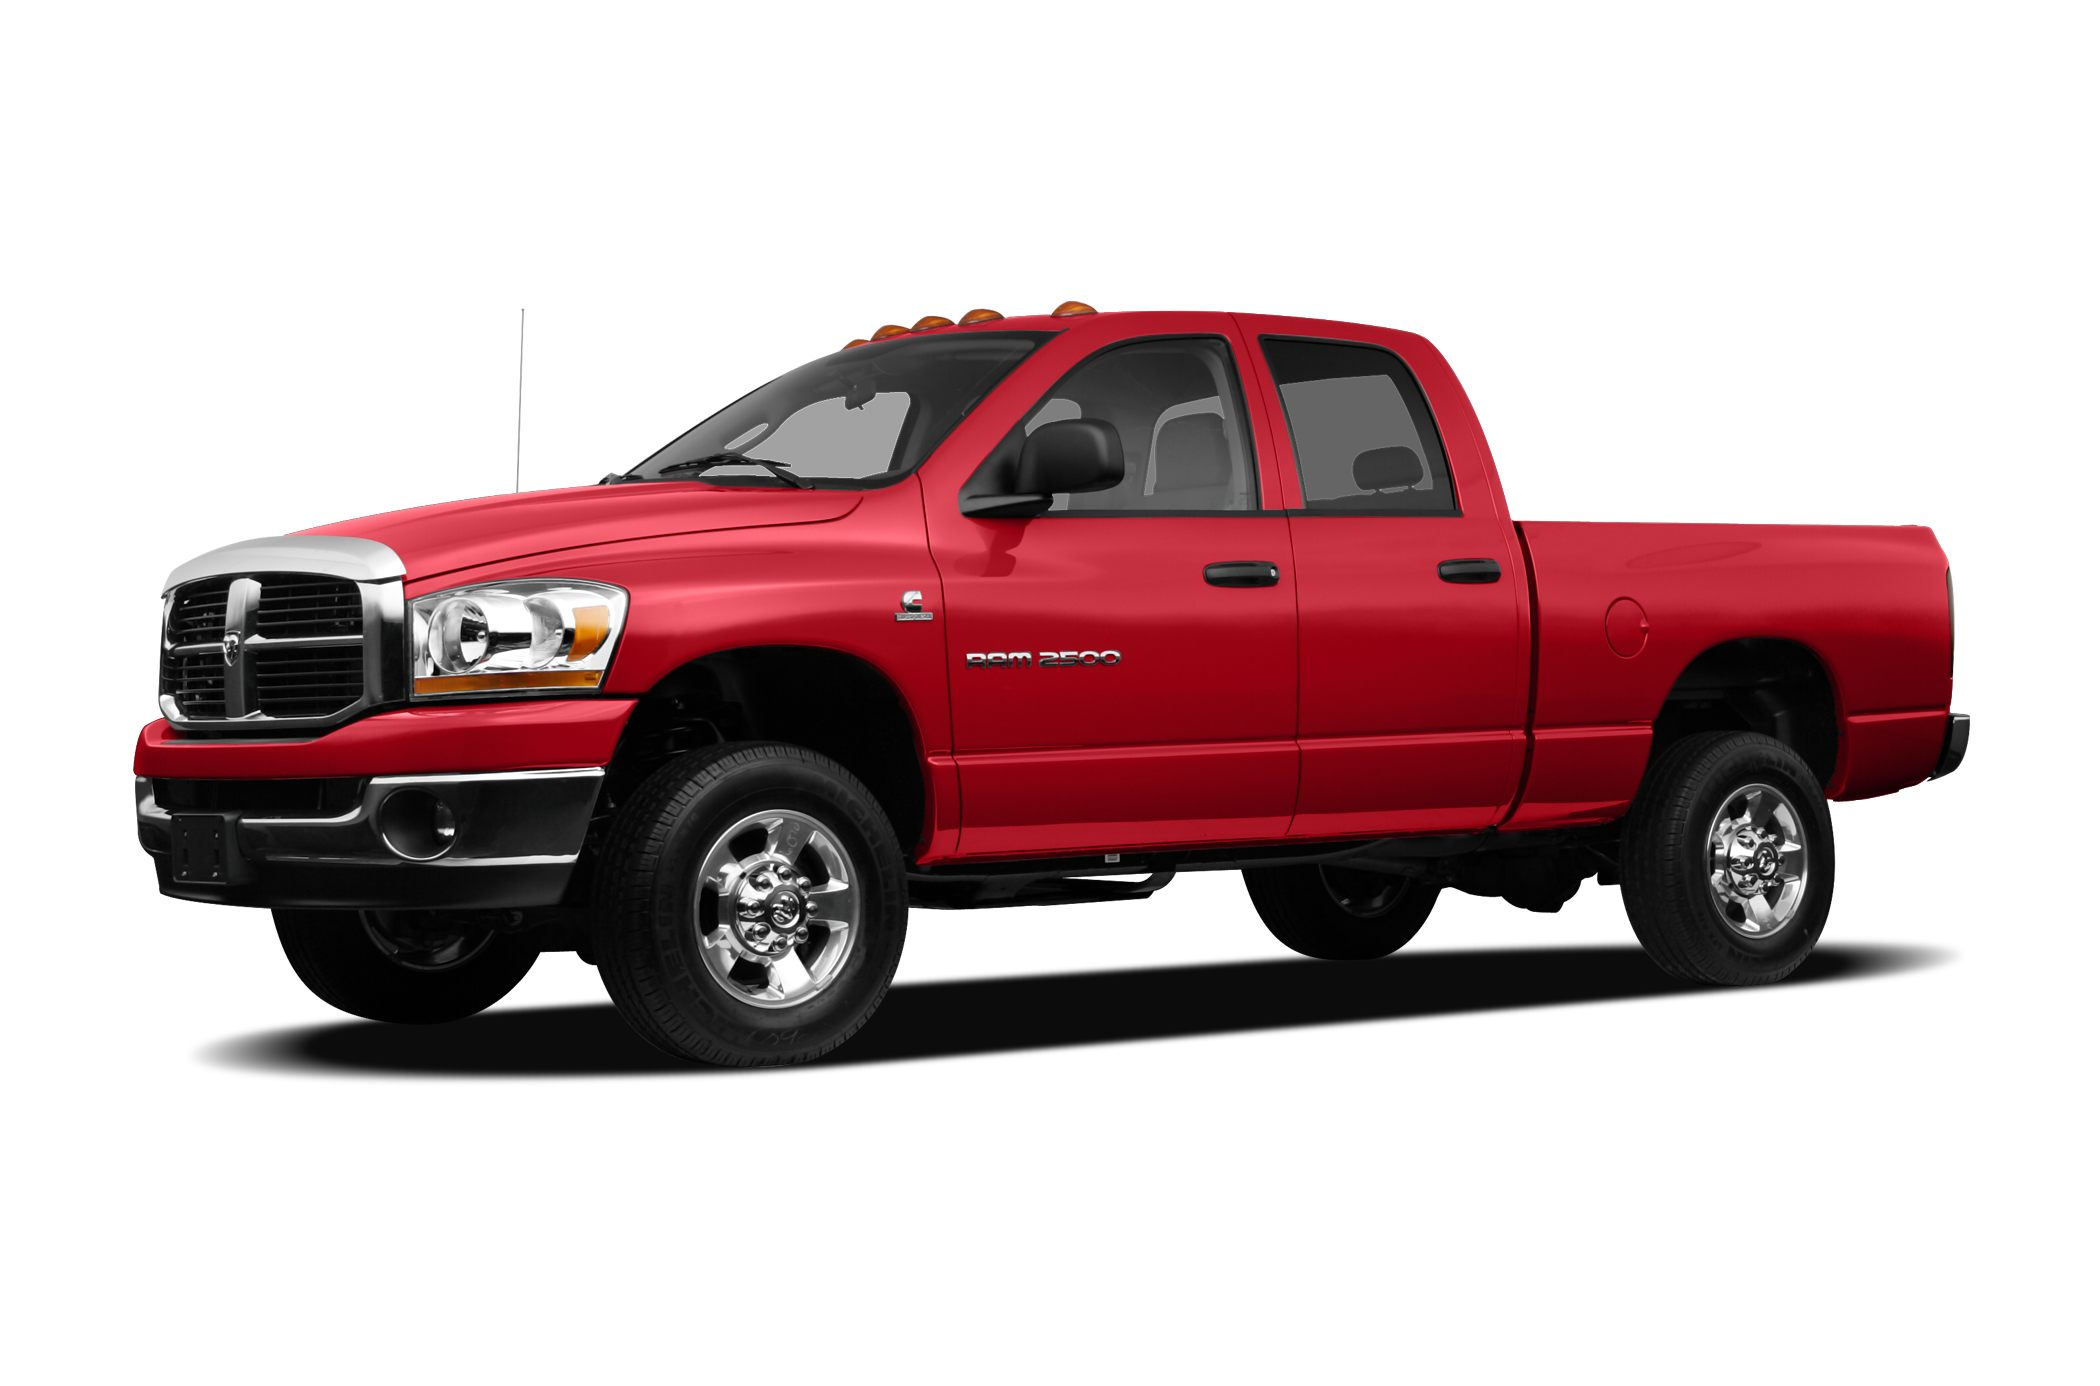 2007 Dodge Ram 2500  Color Red Stock JC164A VIN 1D7KS28A27J609354